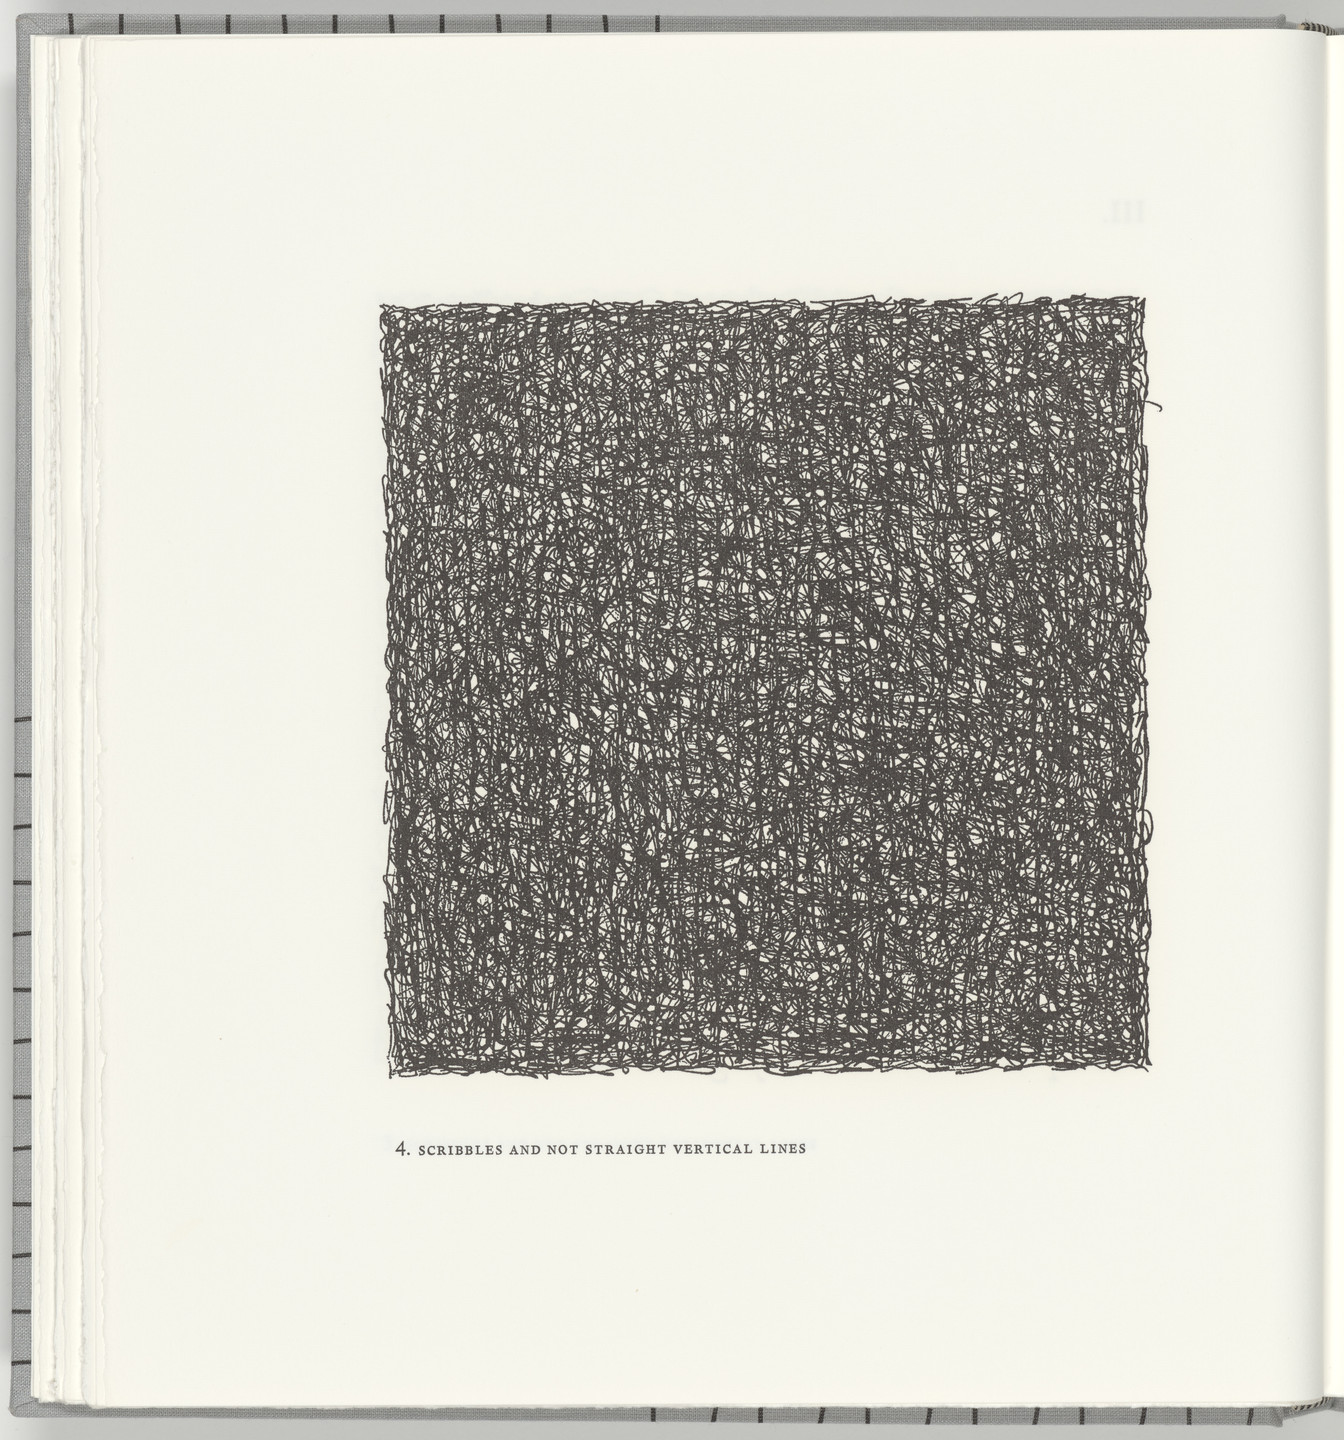 Sol LeWitt. Scribbles and Not Straight Vertical Lines (plate 4) from Squarings. 2003